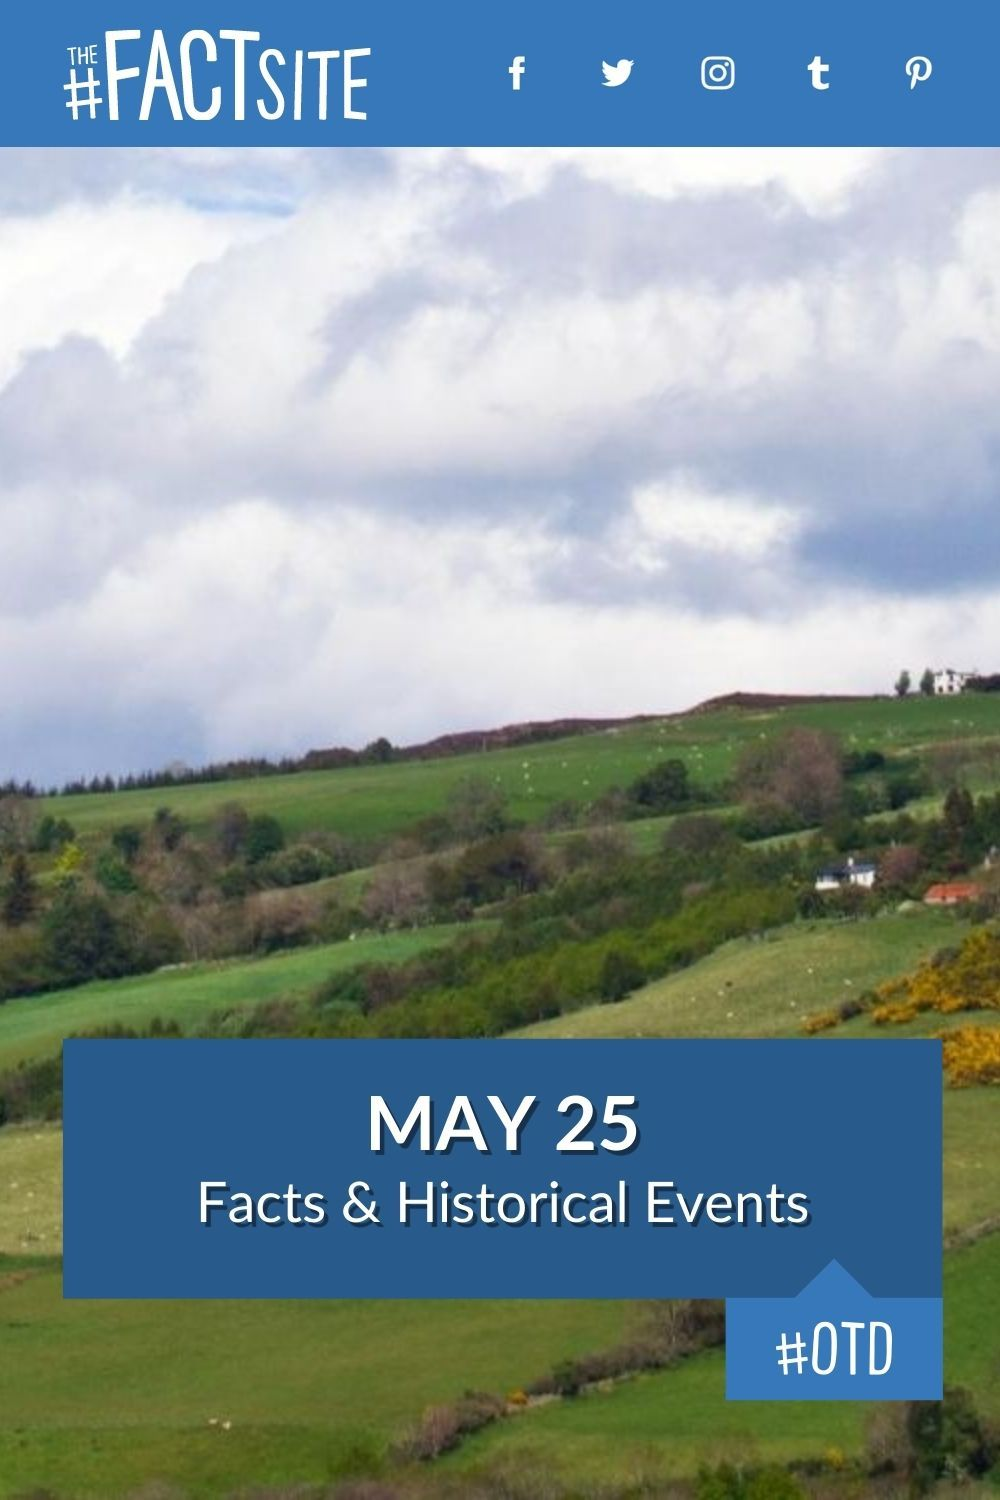 Facts & Historic Events That Happened on May 25